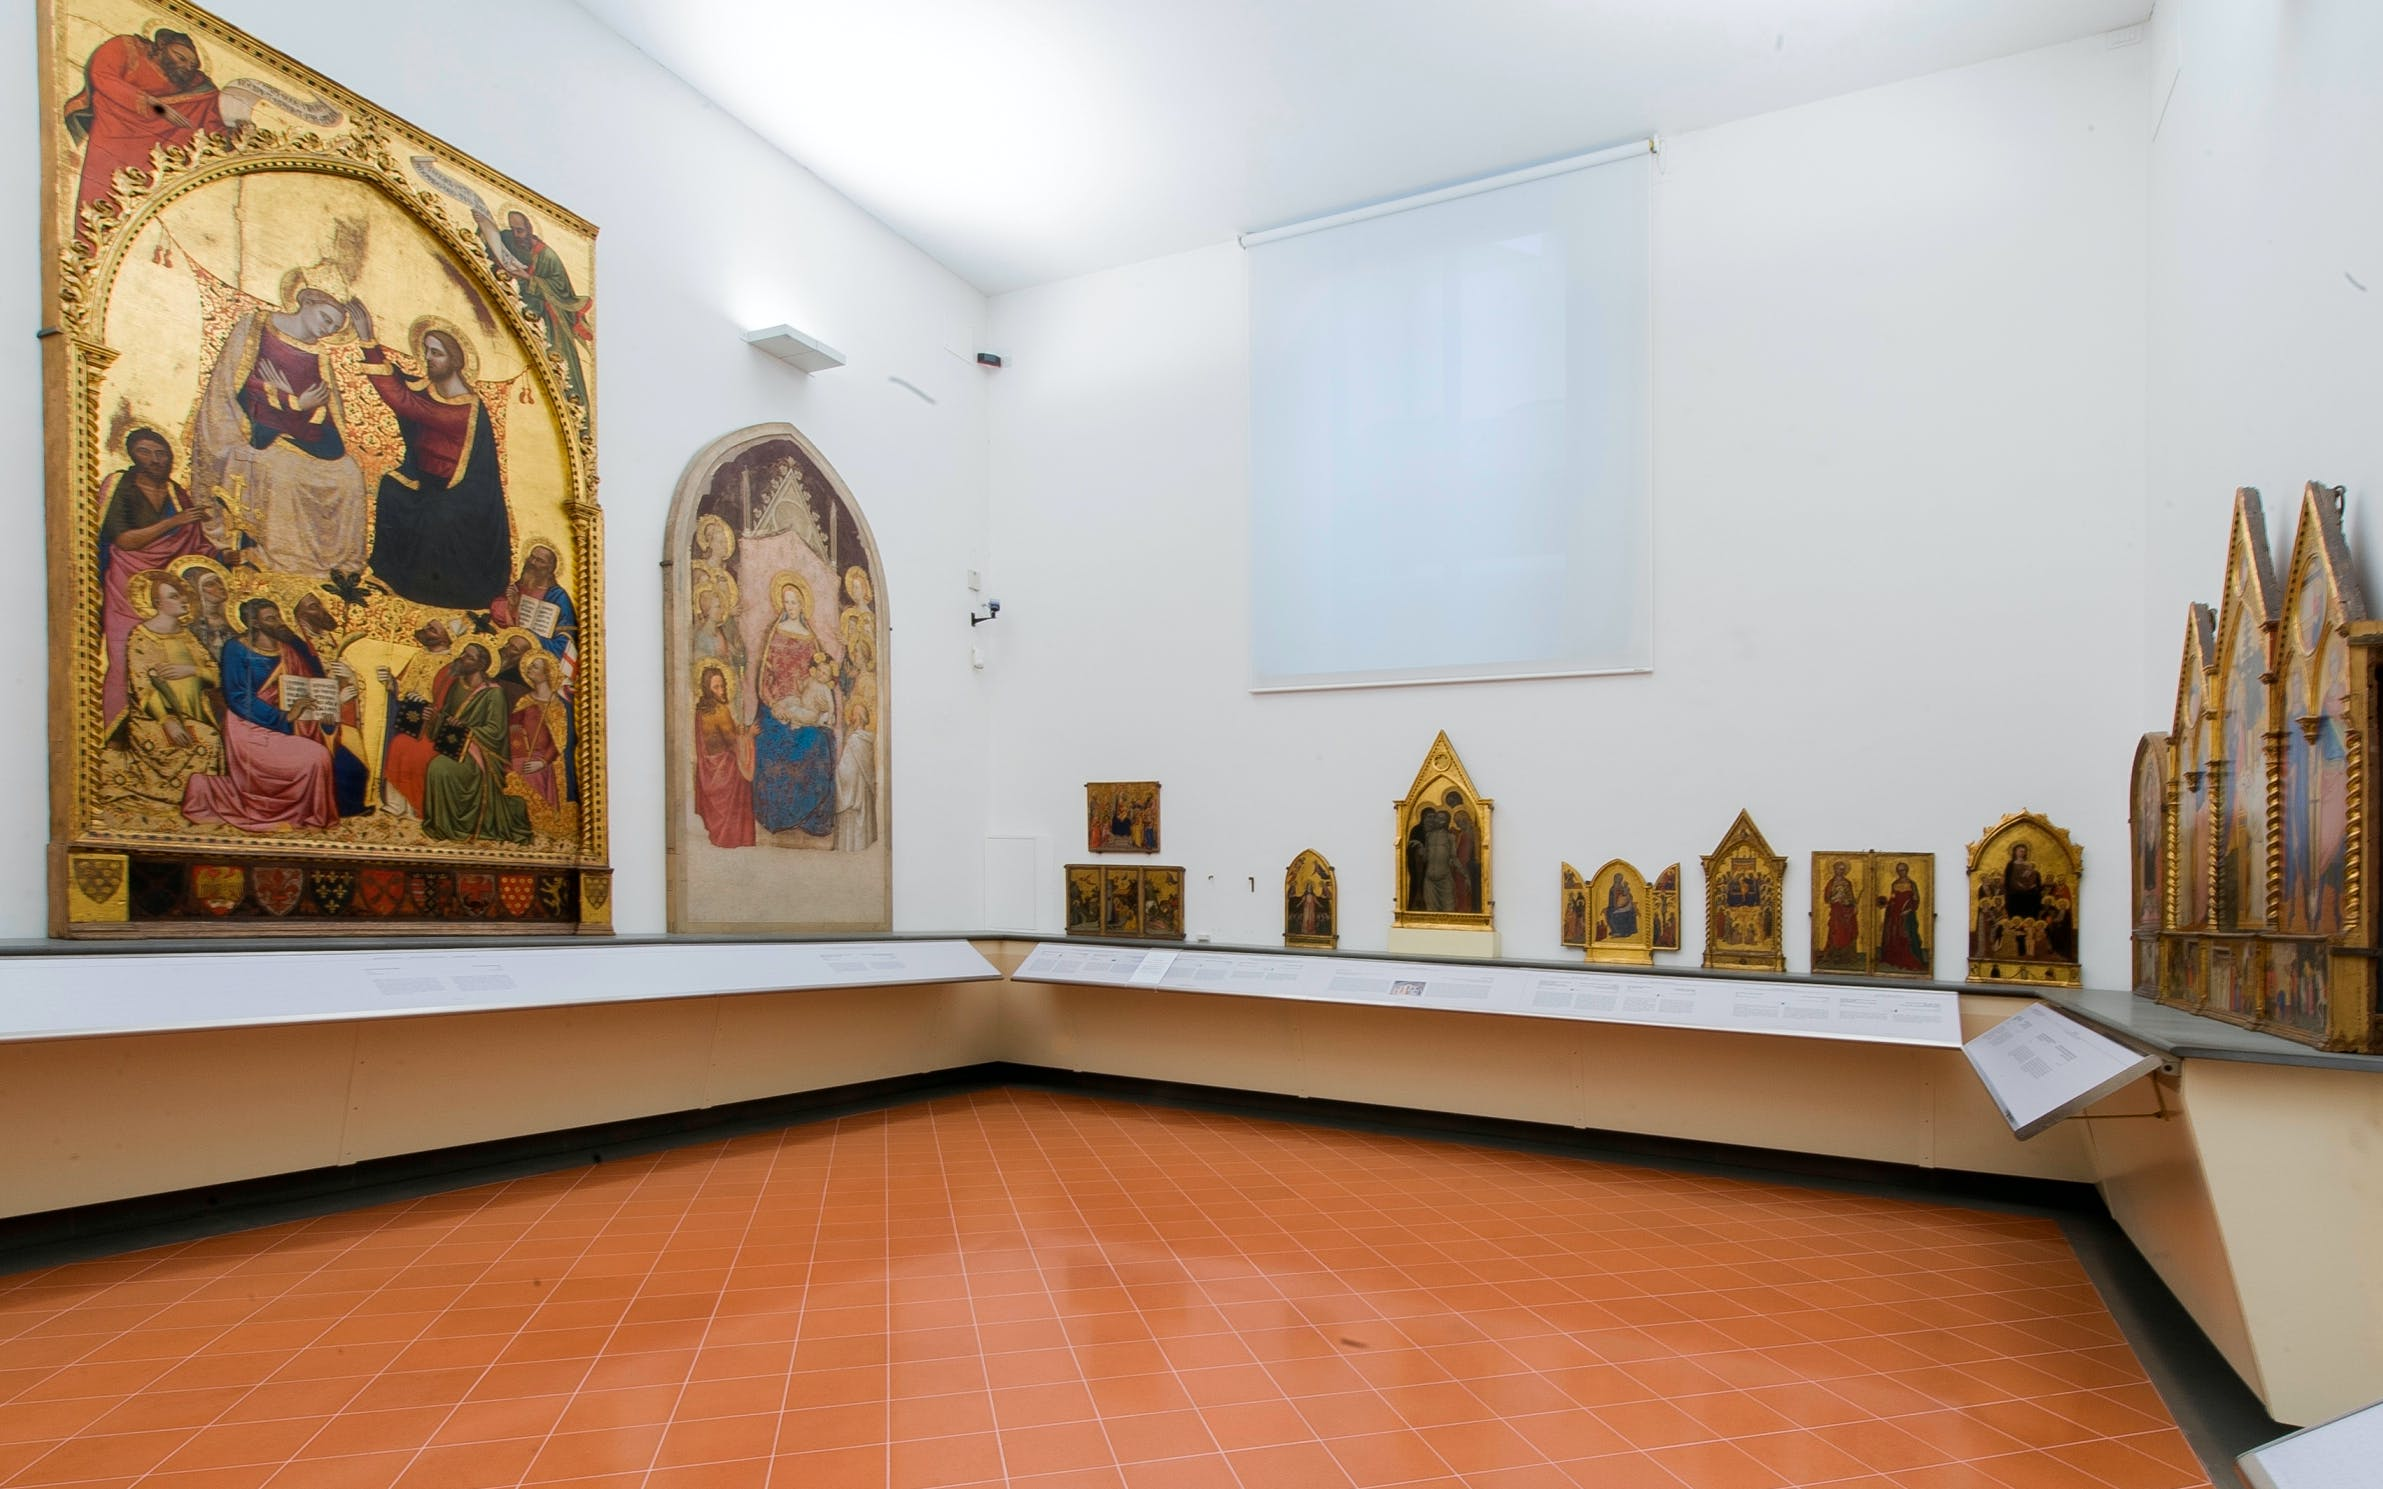 accademia gallery guided tour with skip the line tickets -3